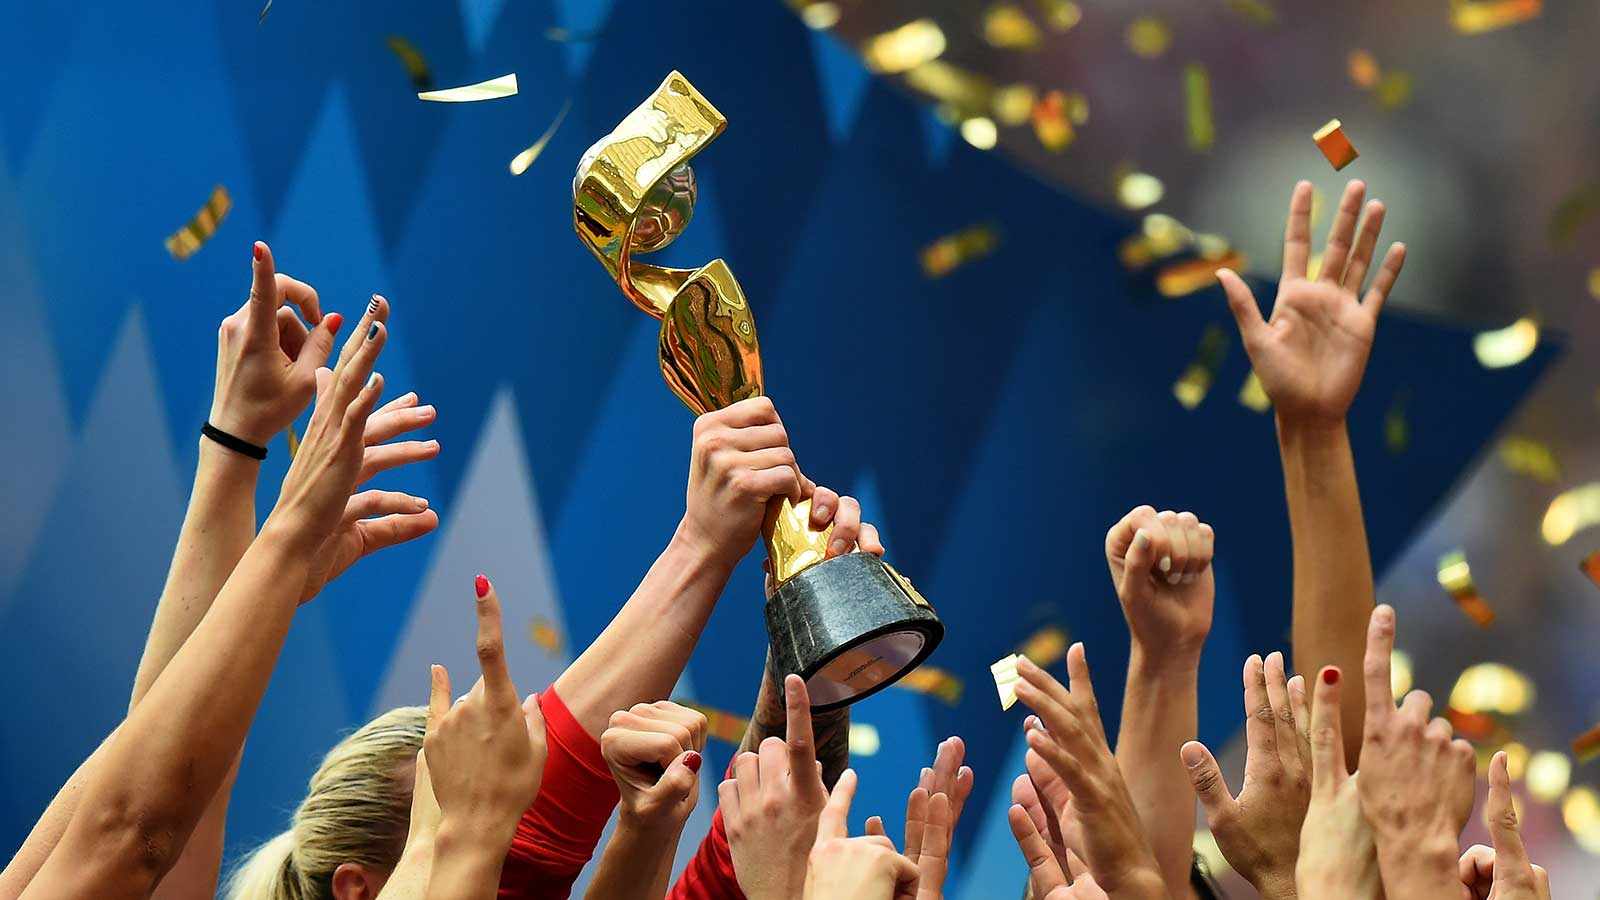 Women's world cup trophy being held up in the air